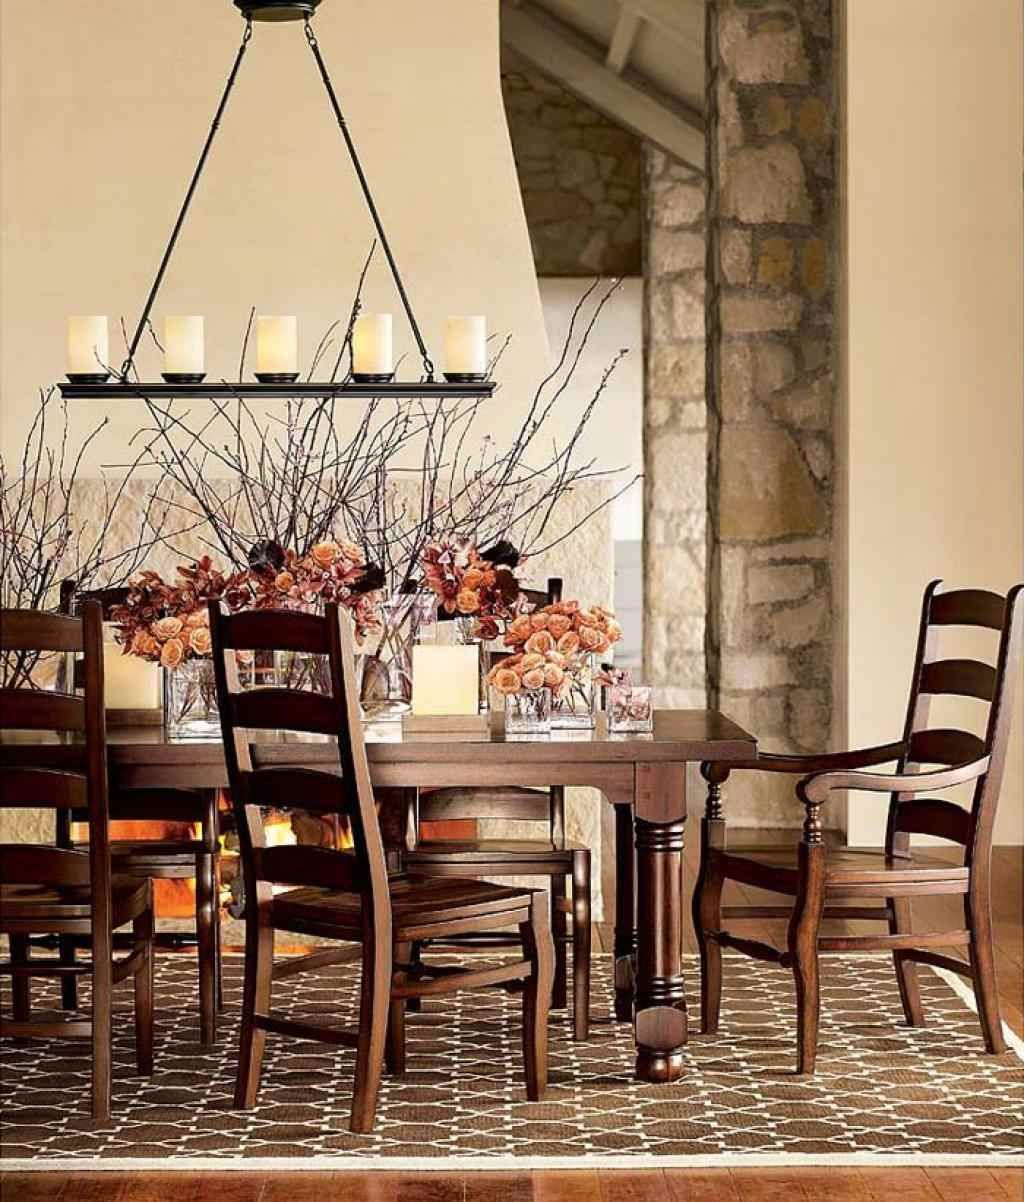 47 Calm And Airy Rustic Dining Room Designs: Dinning Linear Dining Room Chandeliers Dining Table Chairs